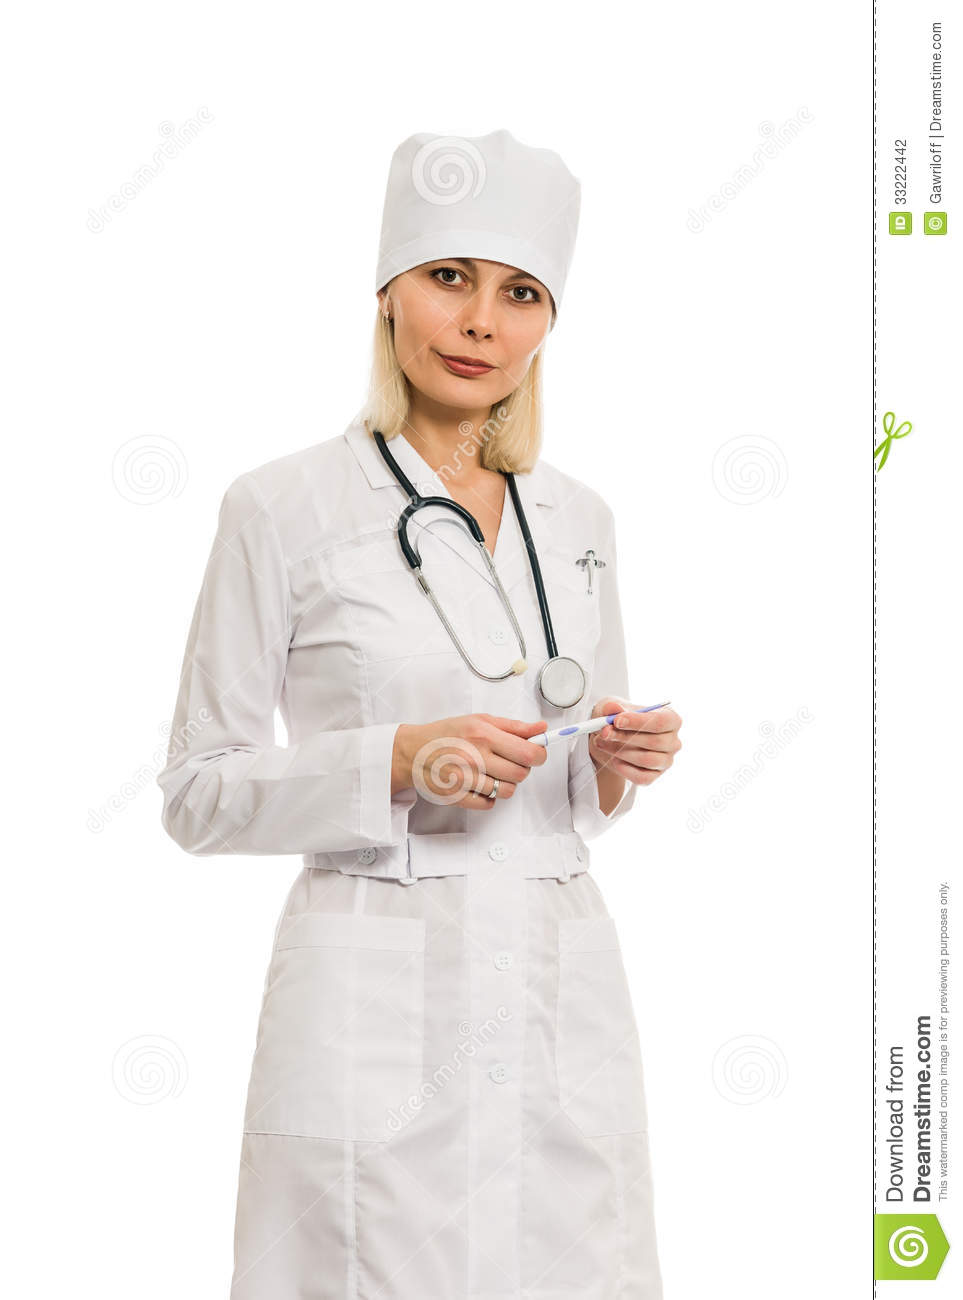 Woman doctor in a white coat isolated on white background